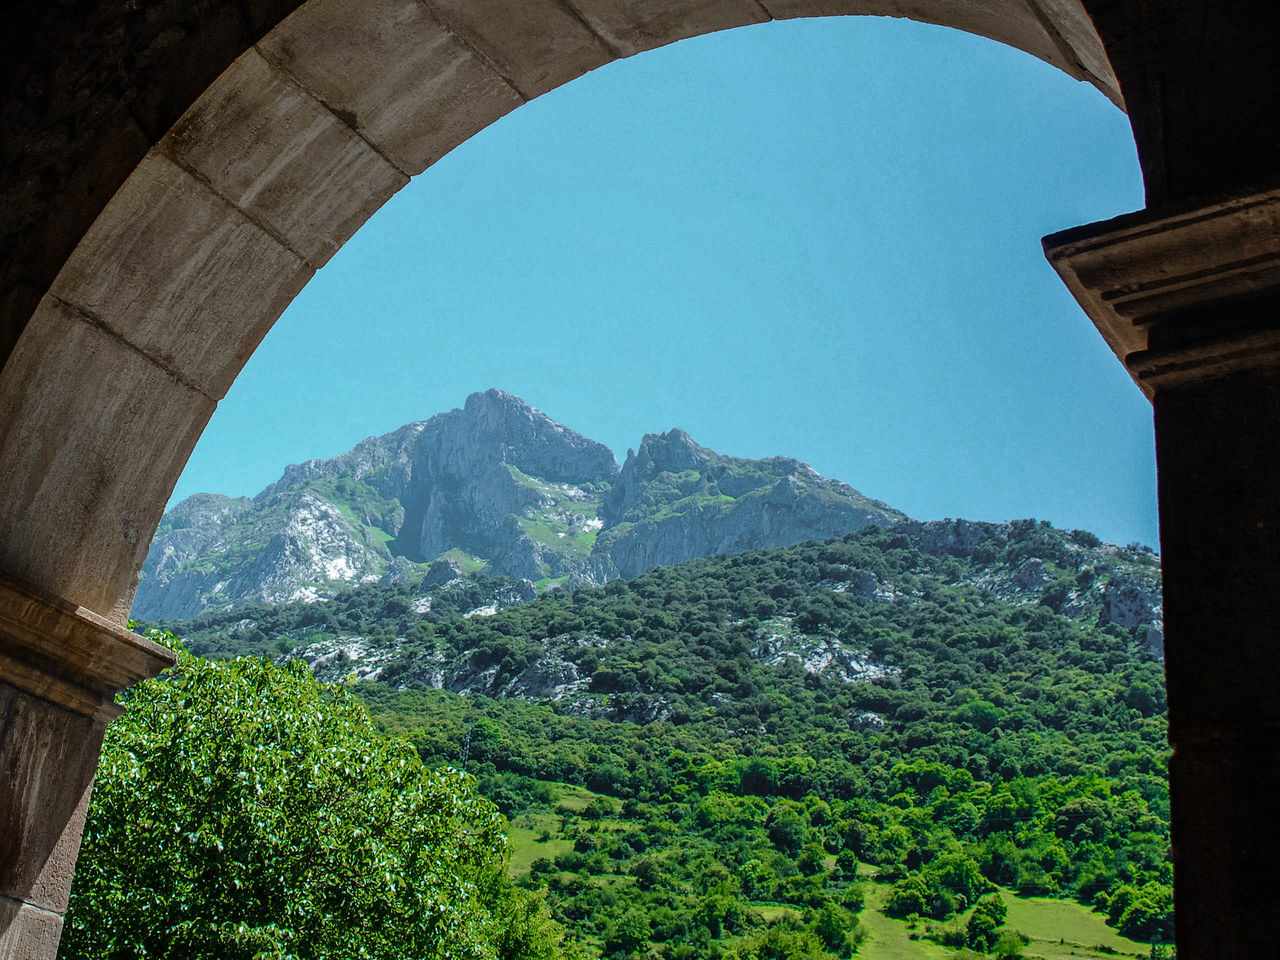 arch, mountain, architecture, day, no people, nature, mountain range, built structure, outdoors, beauty in nature, tree, sky